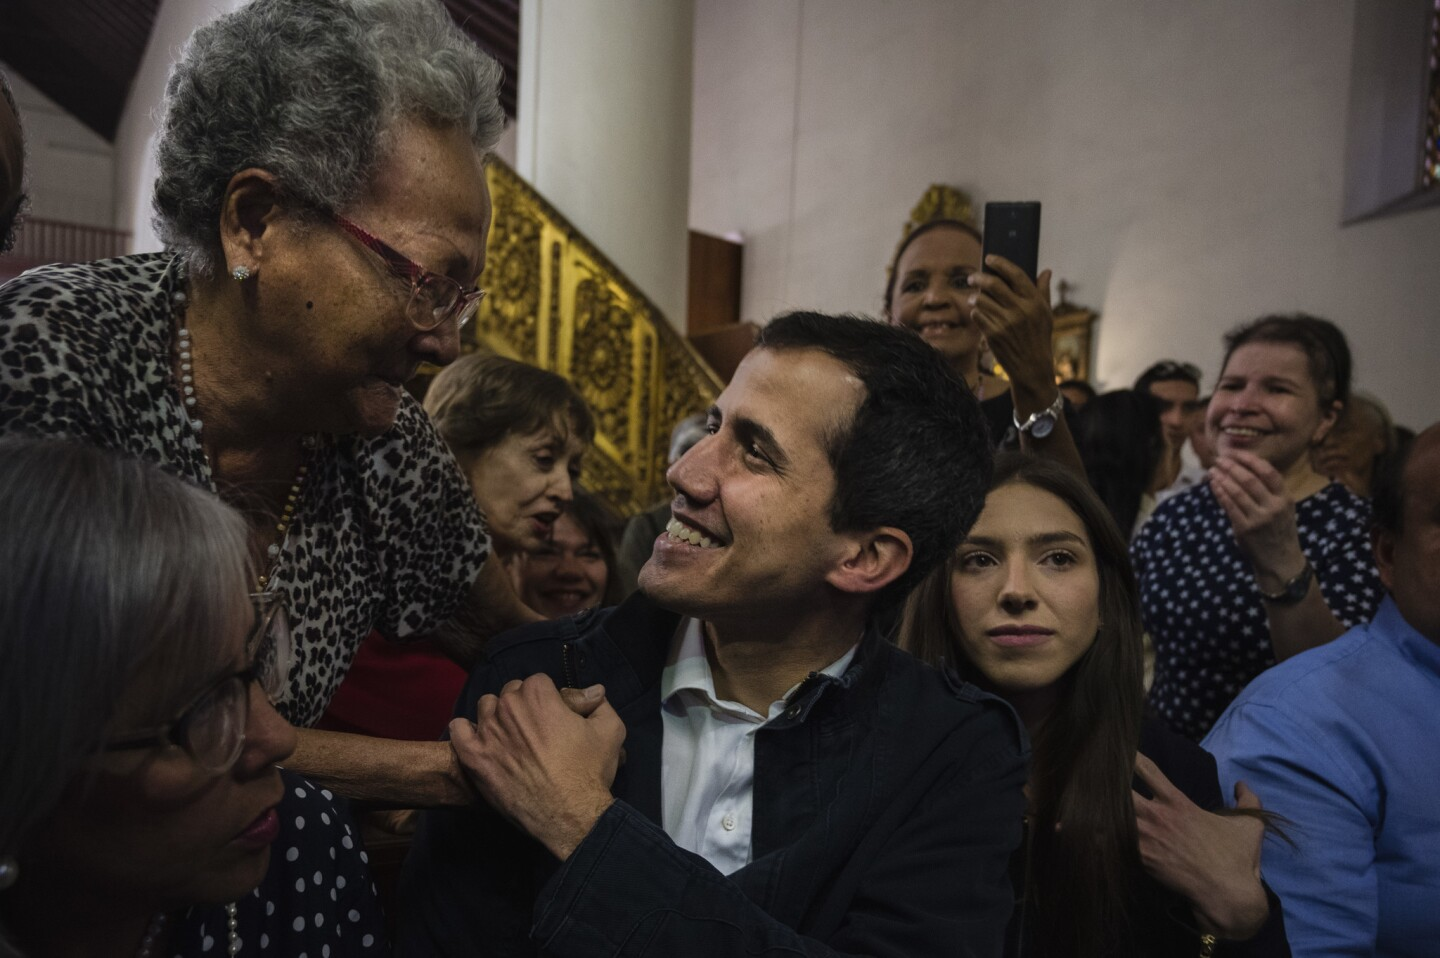 Opposition leader Juan Guaido and his family attend a Mass in honor of Venezuelans killed during the protests in Caracas, Venezuela, on Jan. 27.